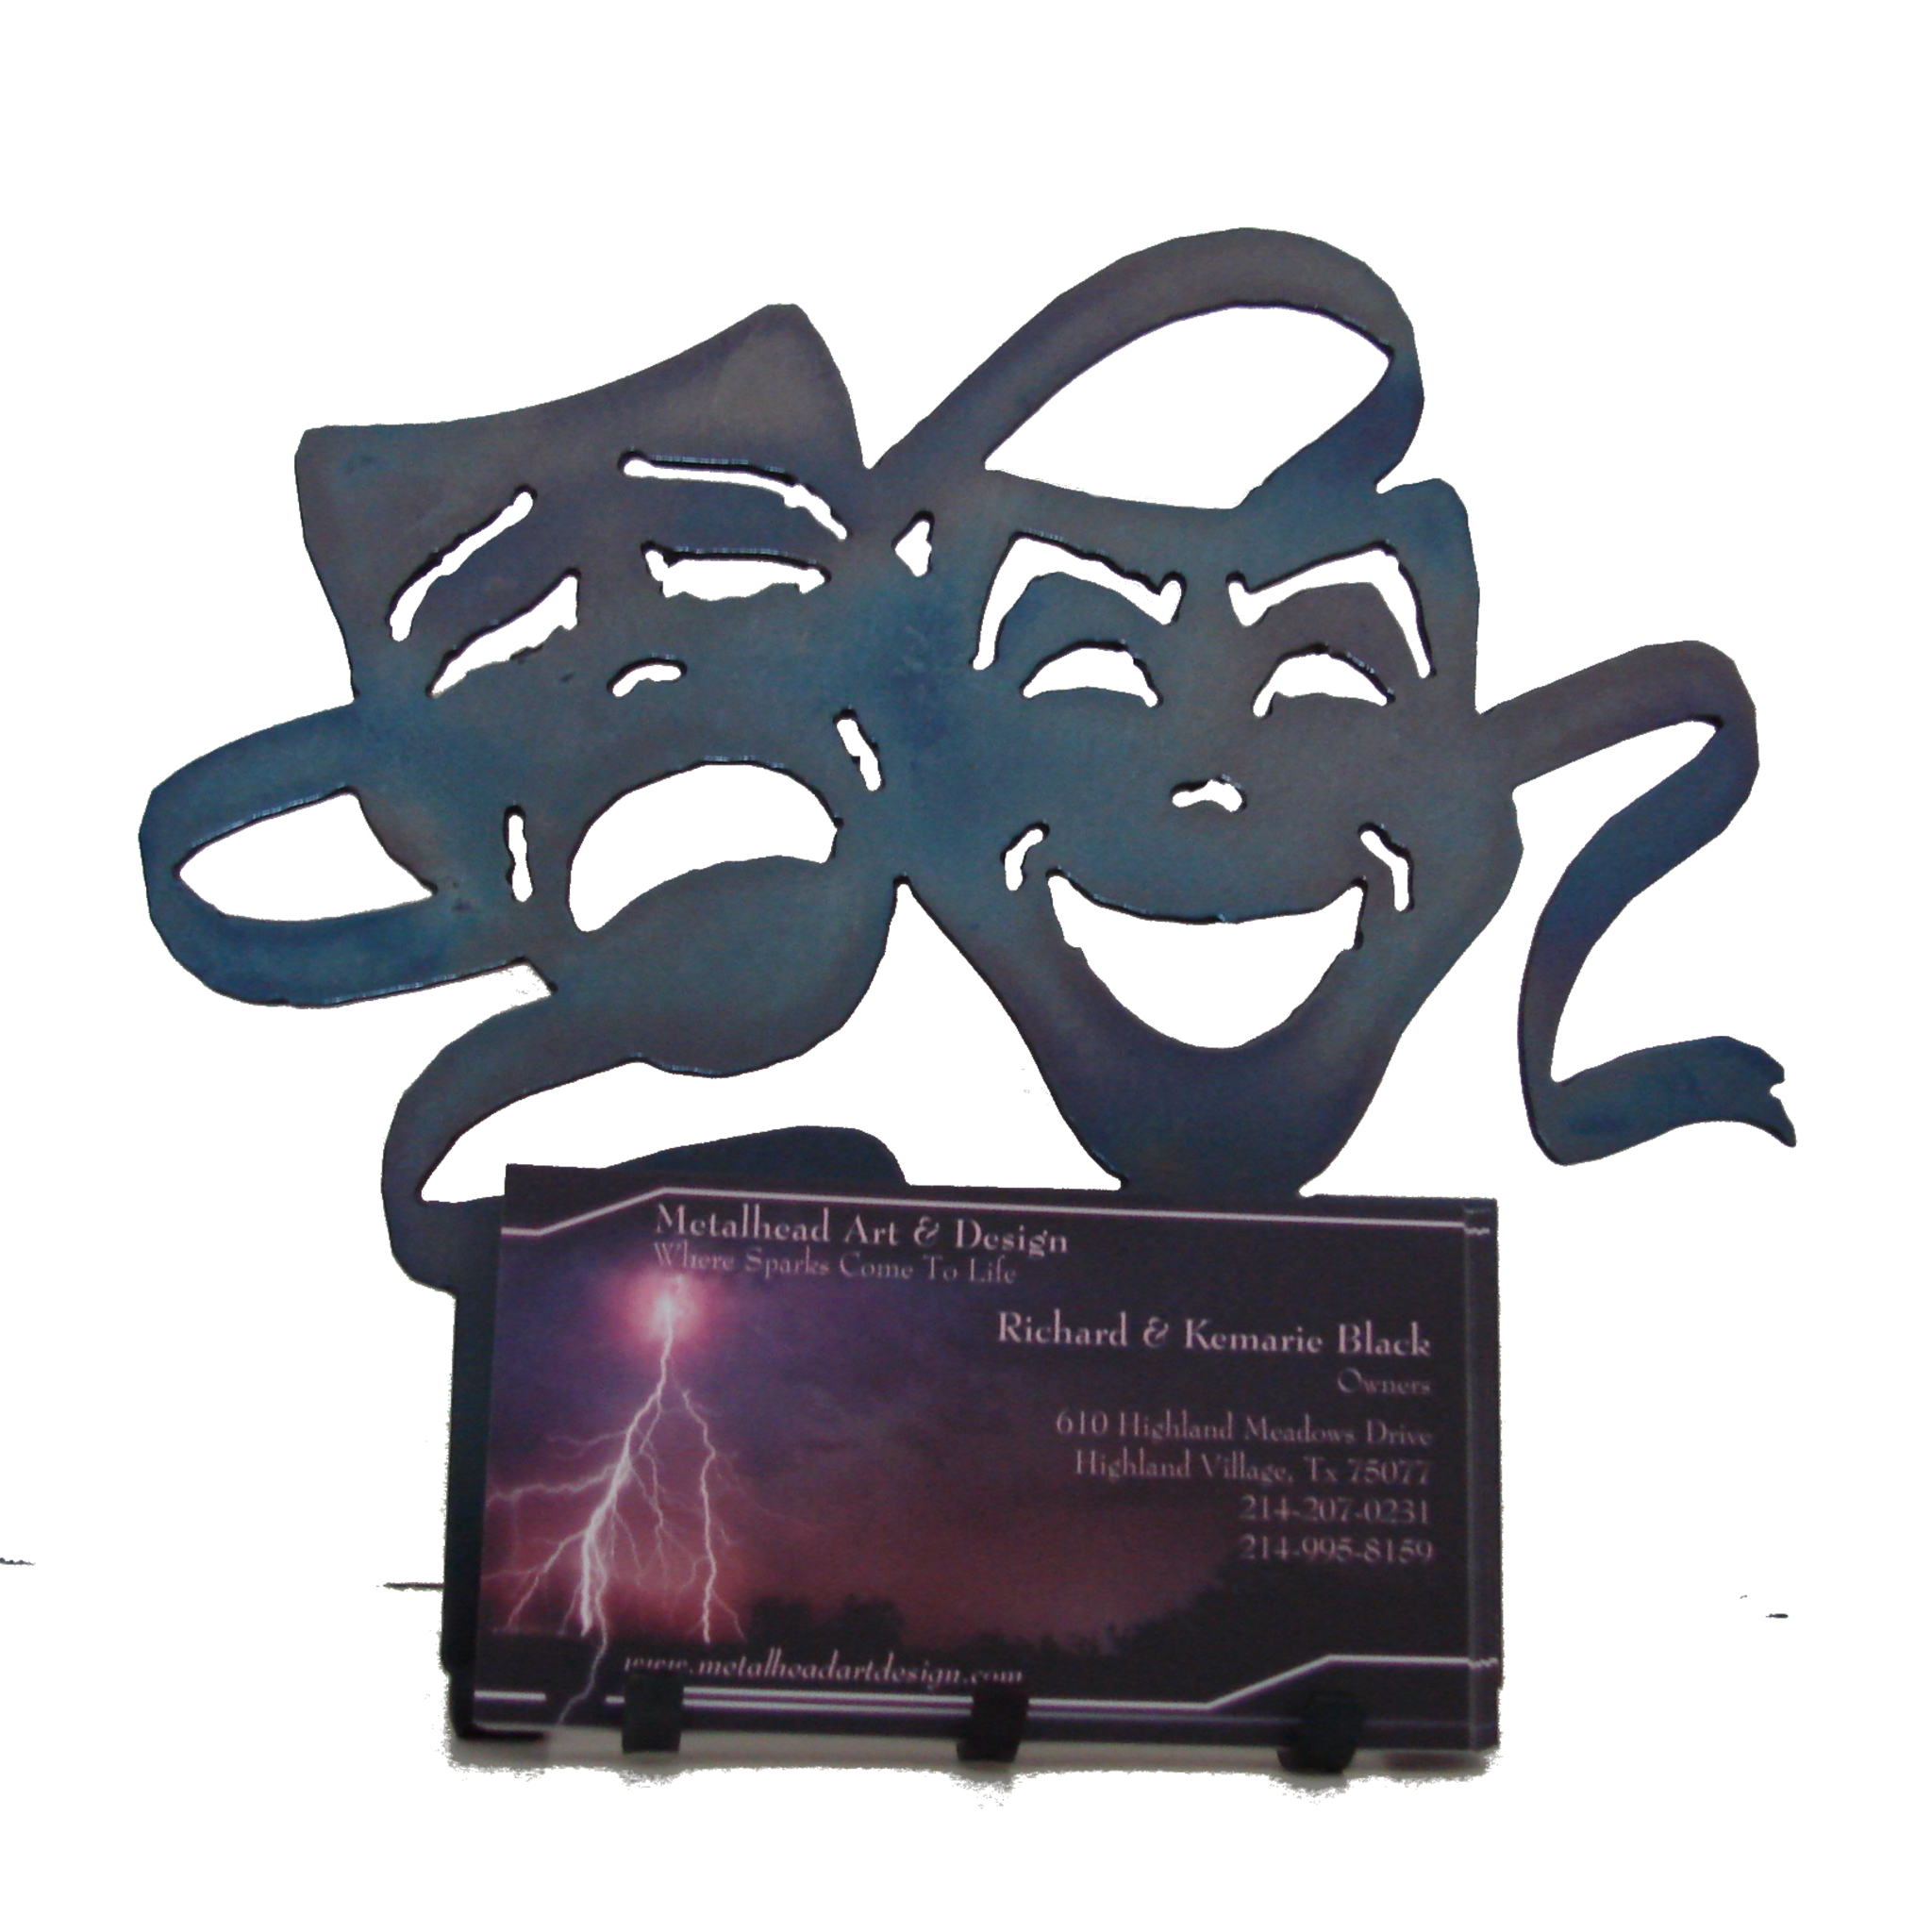 Comedy and Tragedy Business Card Holder - Metalhead Art & Design, LLC